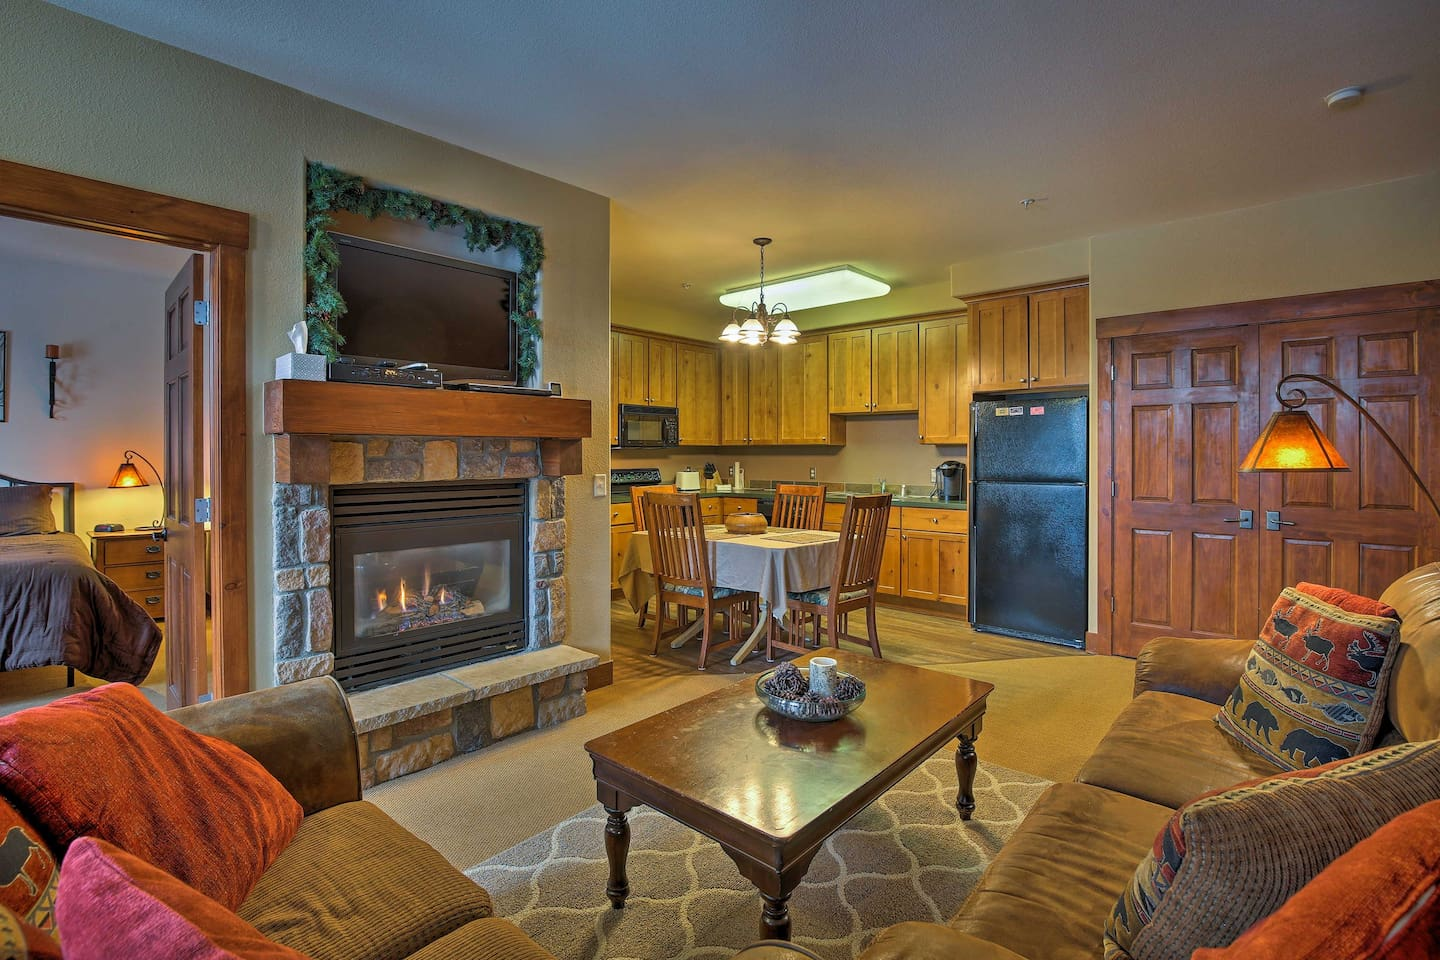 Plan your Rocky Mountain retreat to this 1-bed, 1-bath vacation rental condo.